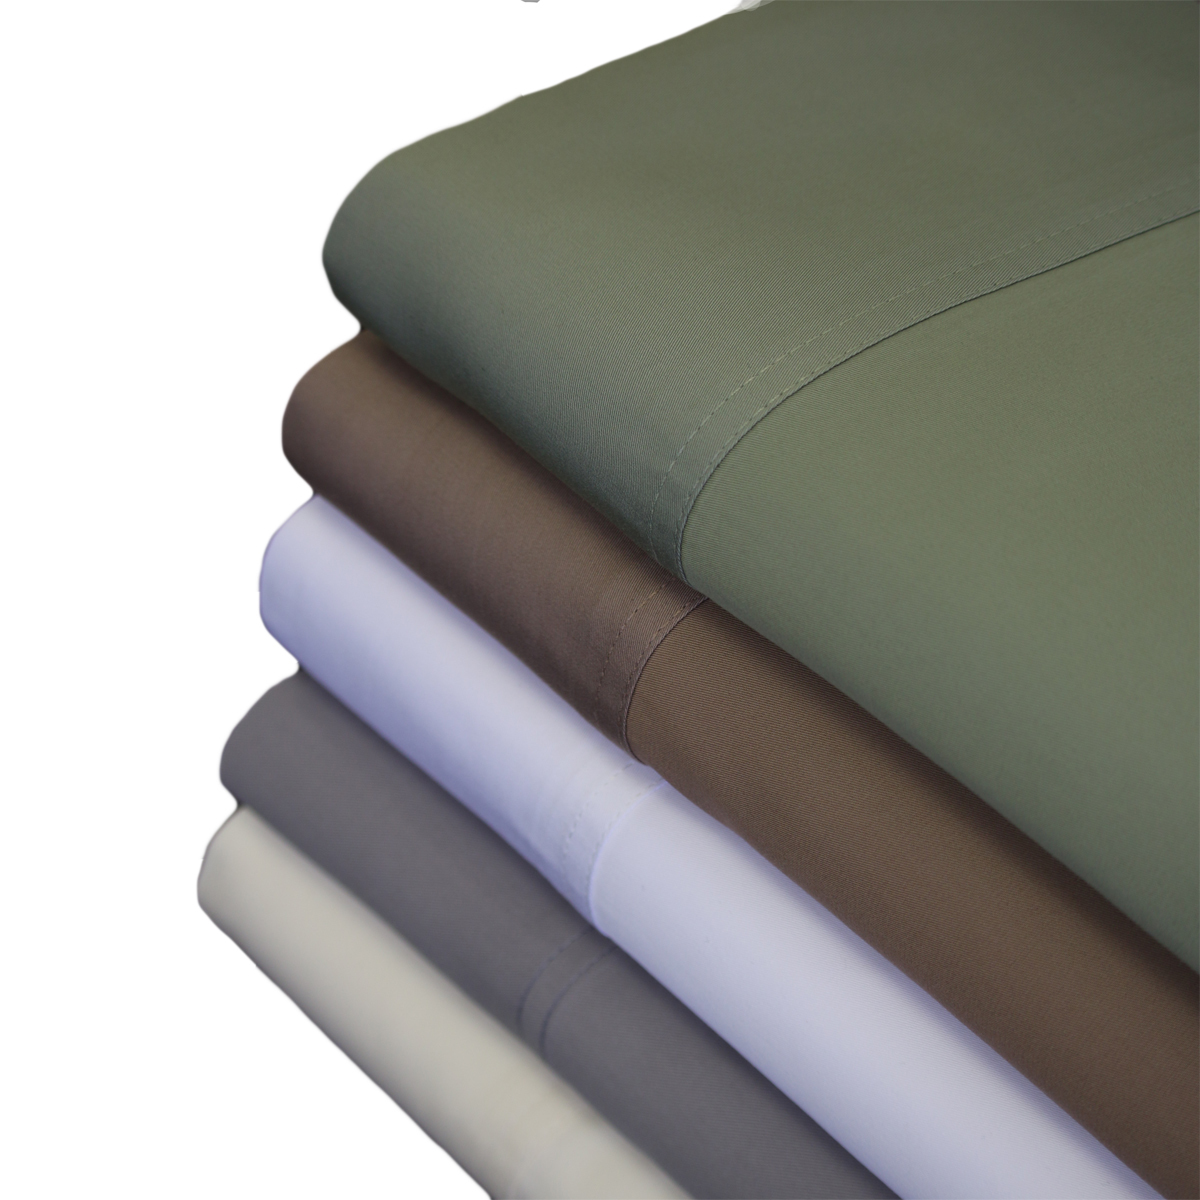 600 Thread Count 100% Bamboo Viscose Sheet Set Collection by Abripedic: Are you comfort conscious? These 100% Bamboo viscose 600 Thread Count Sheet Set is an impeccable choice. These 100% bamboo viscose sheets are acknowledged for their natural softness, durability, and breathability. These sheets are cool and welcoming every night of the week. Experience our superior bamboo viscose sheets for yourself, and see what we mean. They come in 5 soft and soothing colors and make every bed in your home a bamboo viscose one. Machine wash in cold water.Delicate cycle with mild detergent. No Bleach. Tumble Dry on low heat. Remove immediately at end of cycle. Press with warm iron if needed. Do not use hot water.